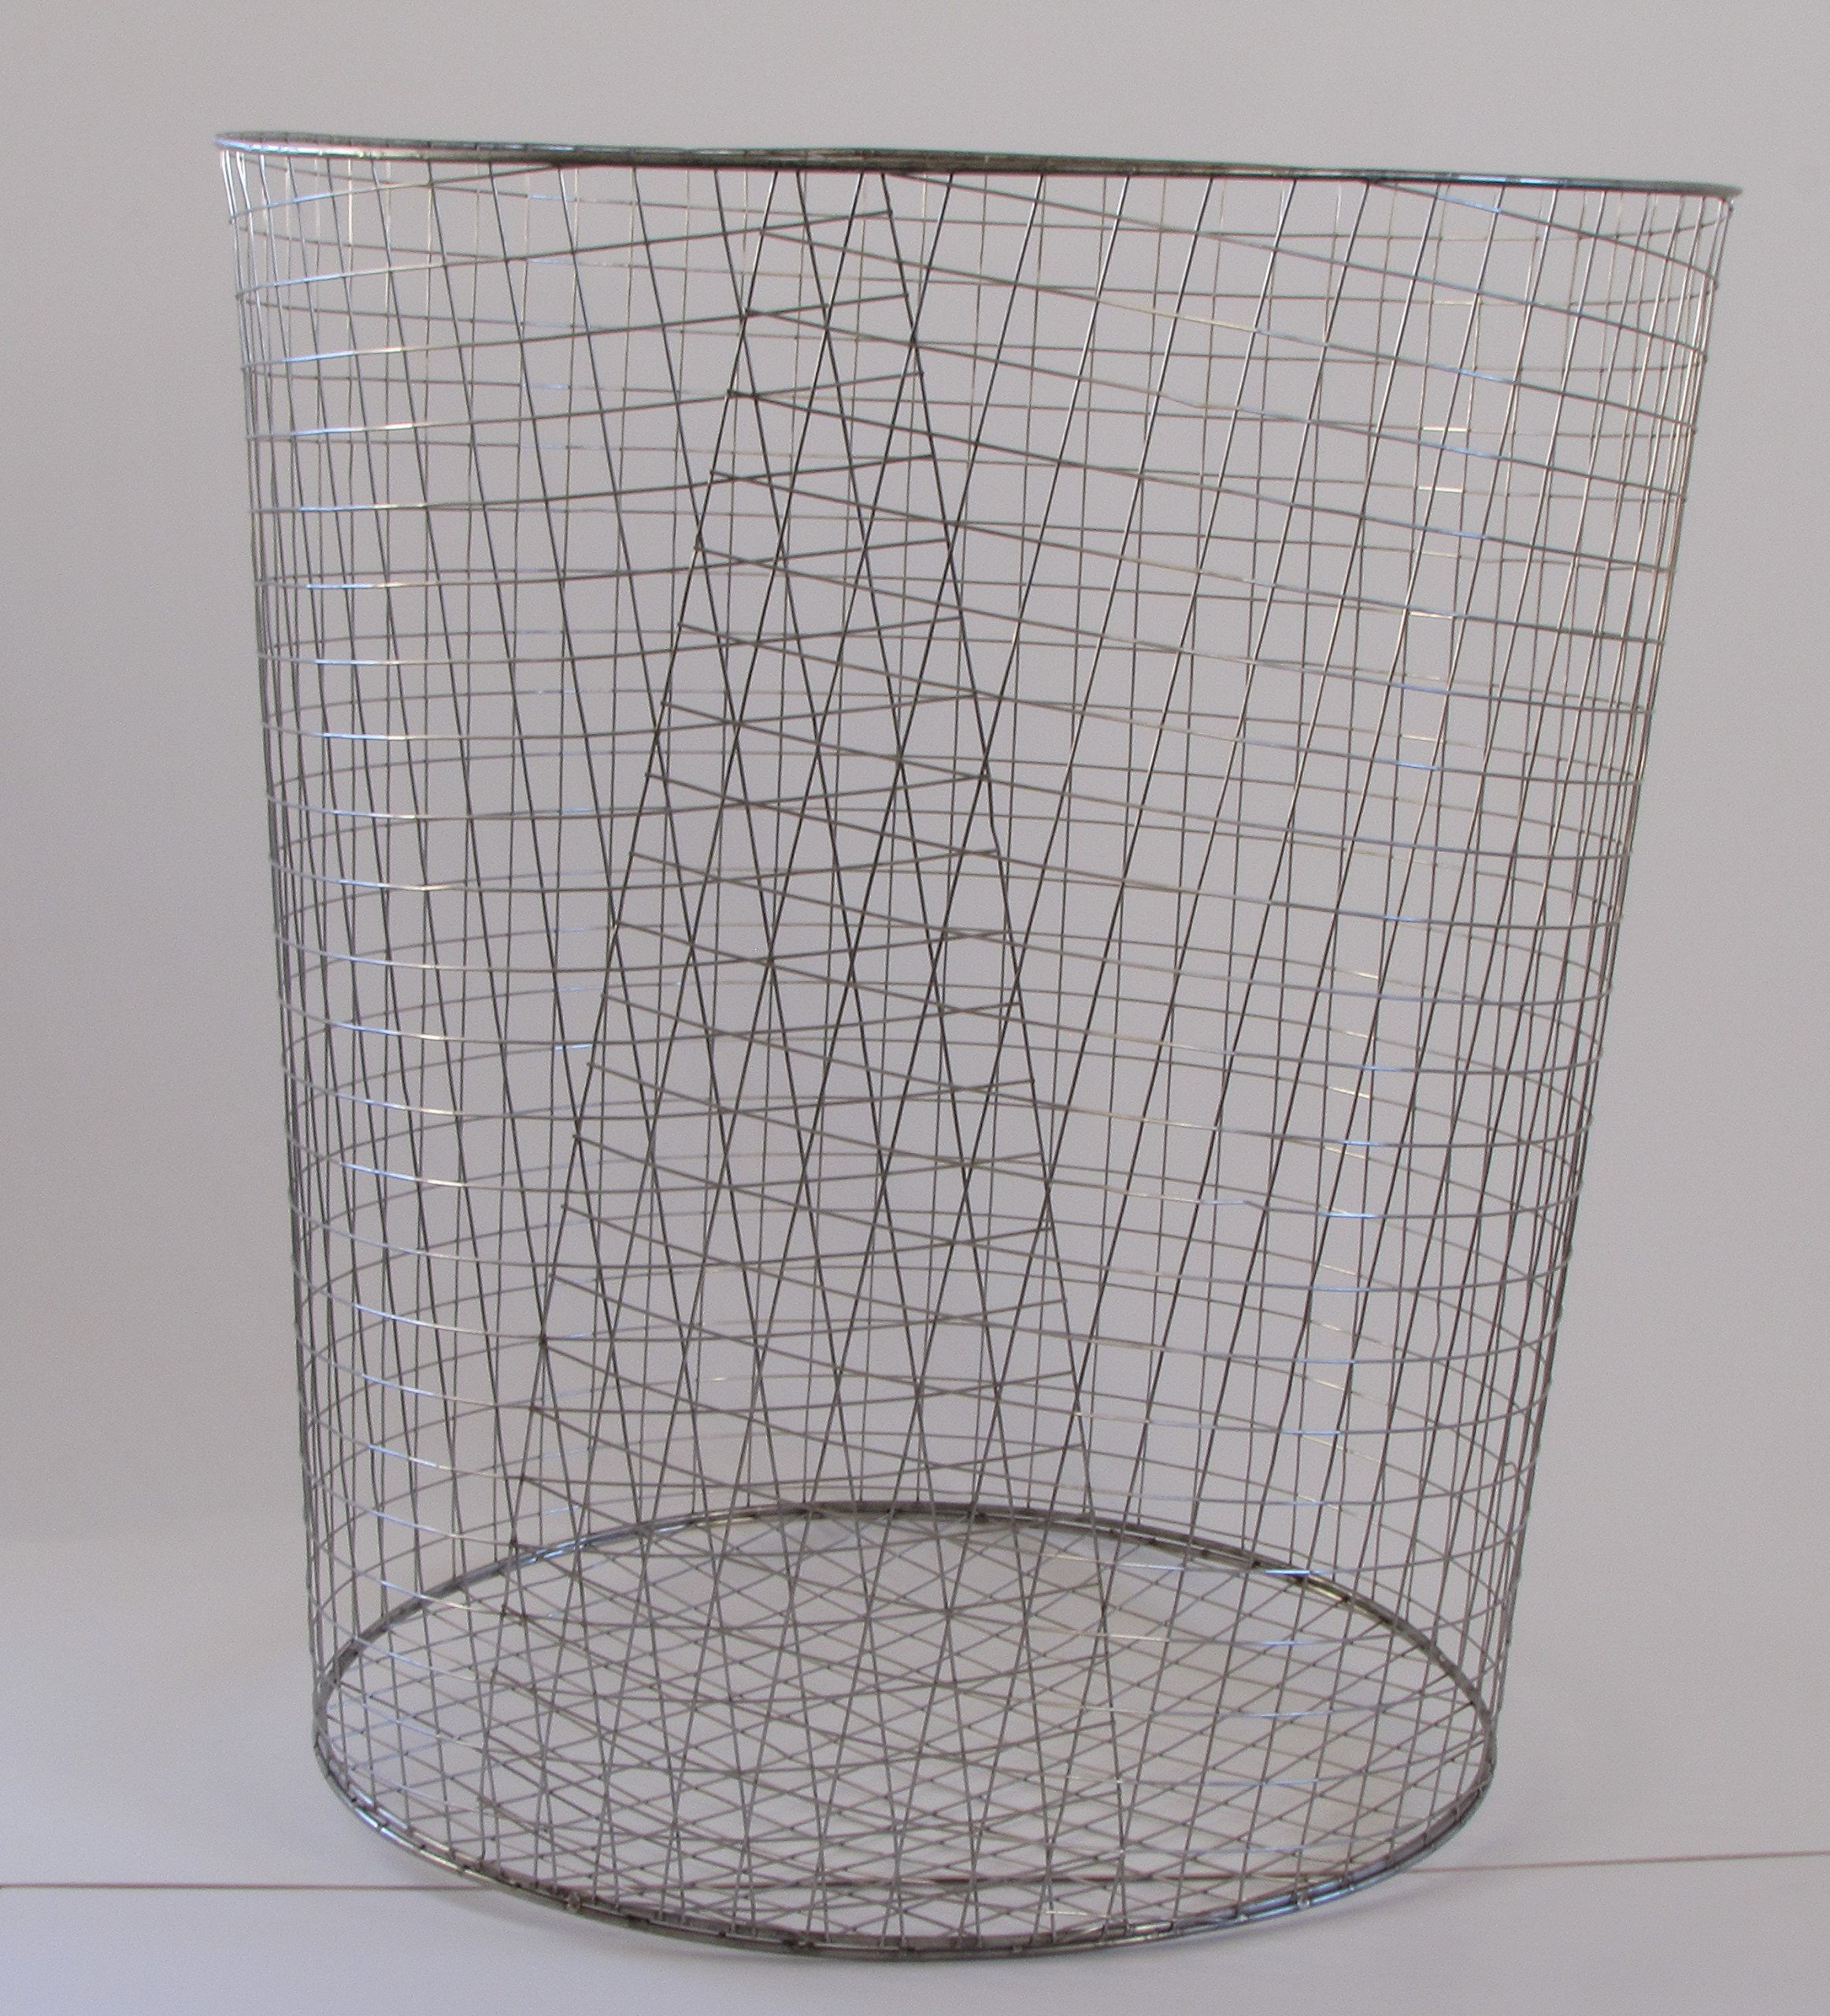 Gophers Limited Stainless Steel Wire Gopher / Mole Barrier Basket, 15 Gallon Size, 1 Case Quantity 6 Baskets